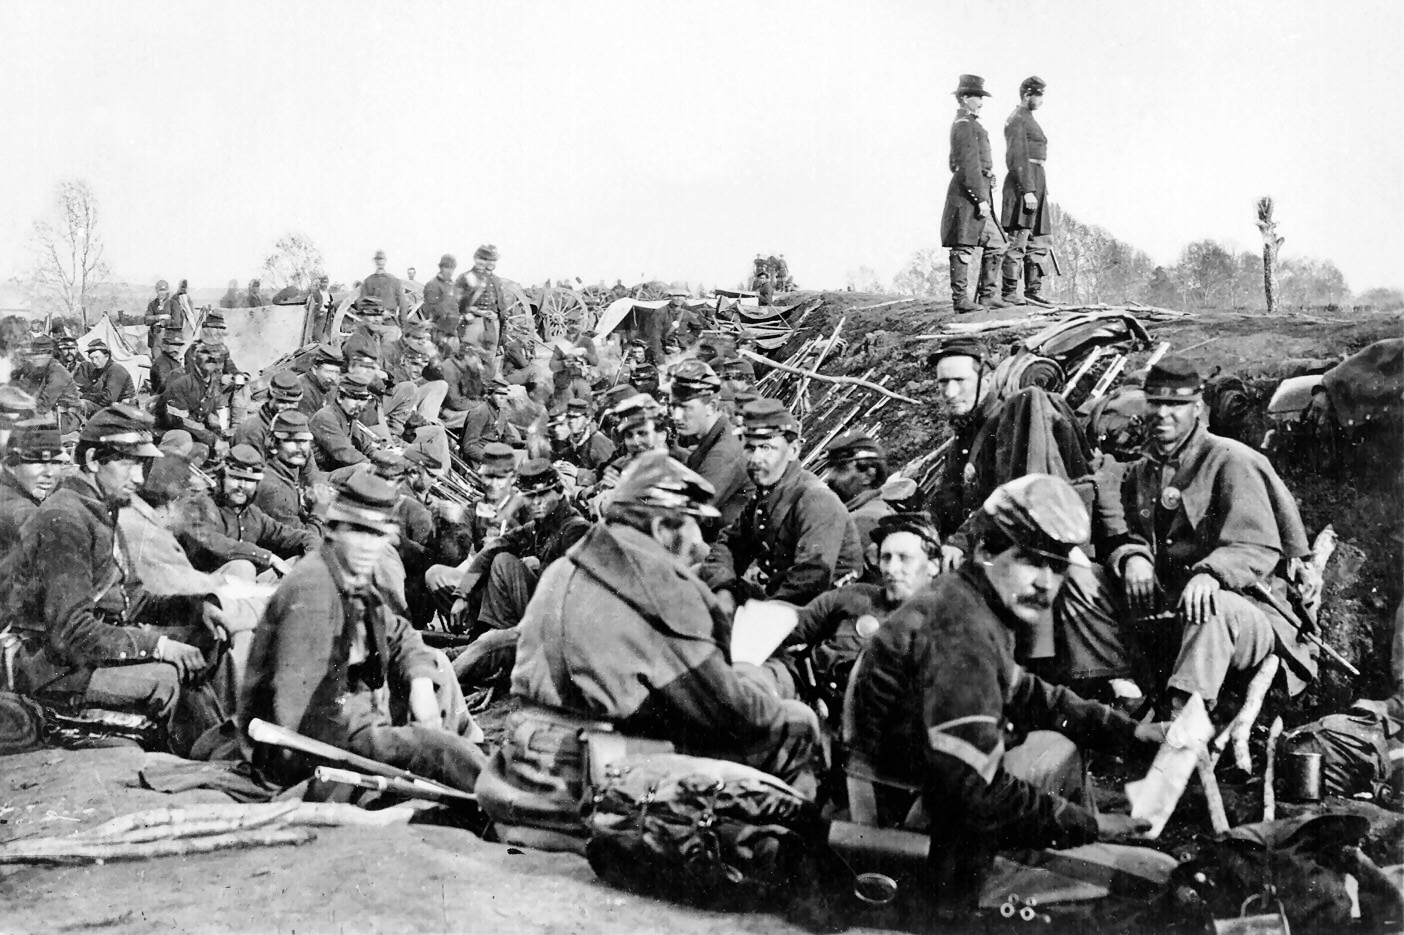 Union_soldiers_entrenched_along_the_west_bank_of_the_Rappahannock_River_at_Fredericksburg__Virginia_(111-B-157).jpg